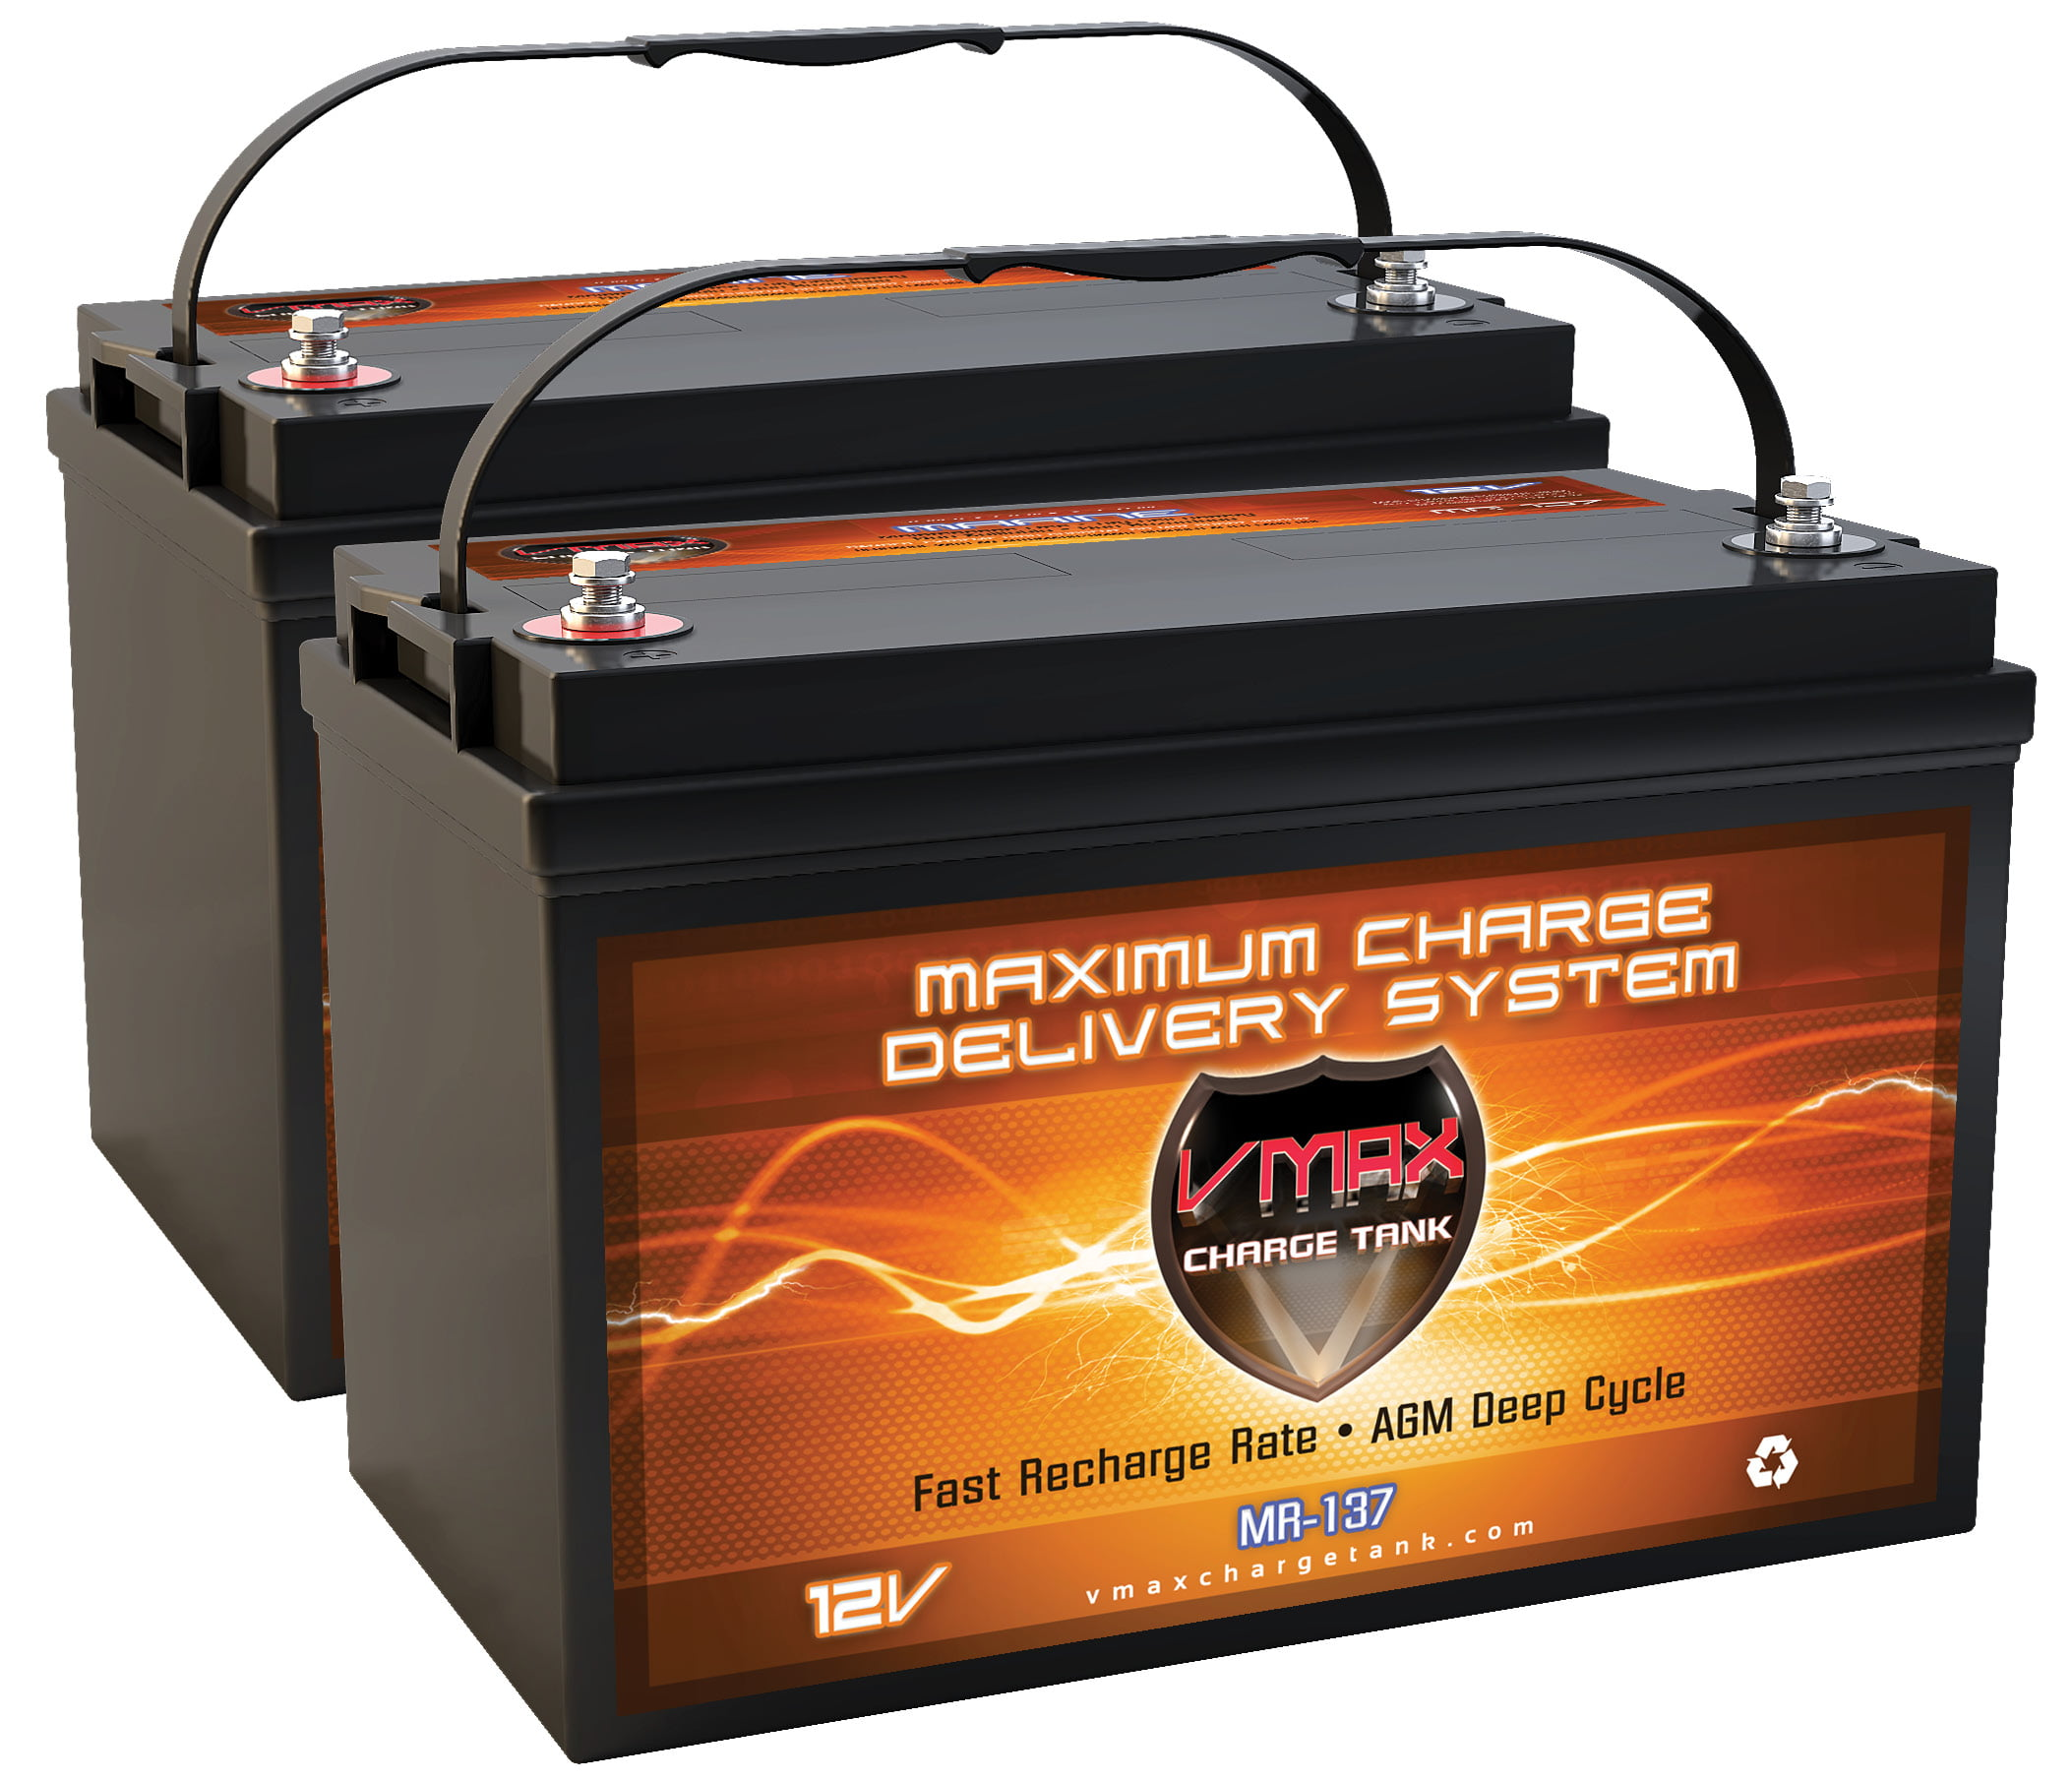 QTY2 VMAX MR137-120 12V 120AH AGM Deep Cycle Group 31 Batteries for Minn Kota Maxxum 70 SC BG Hand Freshwater Bow Mount... by VMAX USA